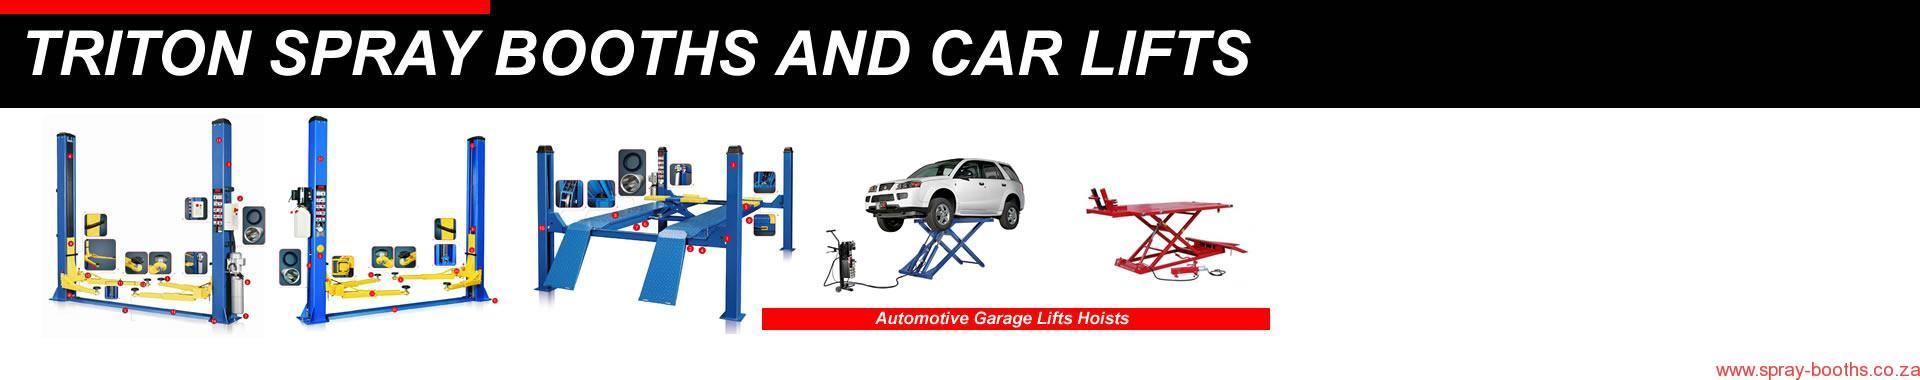 2 Post Car Lifts 4 Post Car Lifts Scissor Lifts Cape Town Johannesburg suppliers 021 5562413